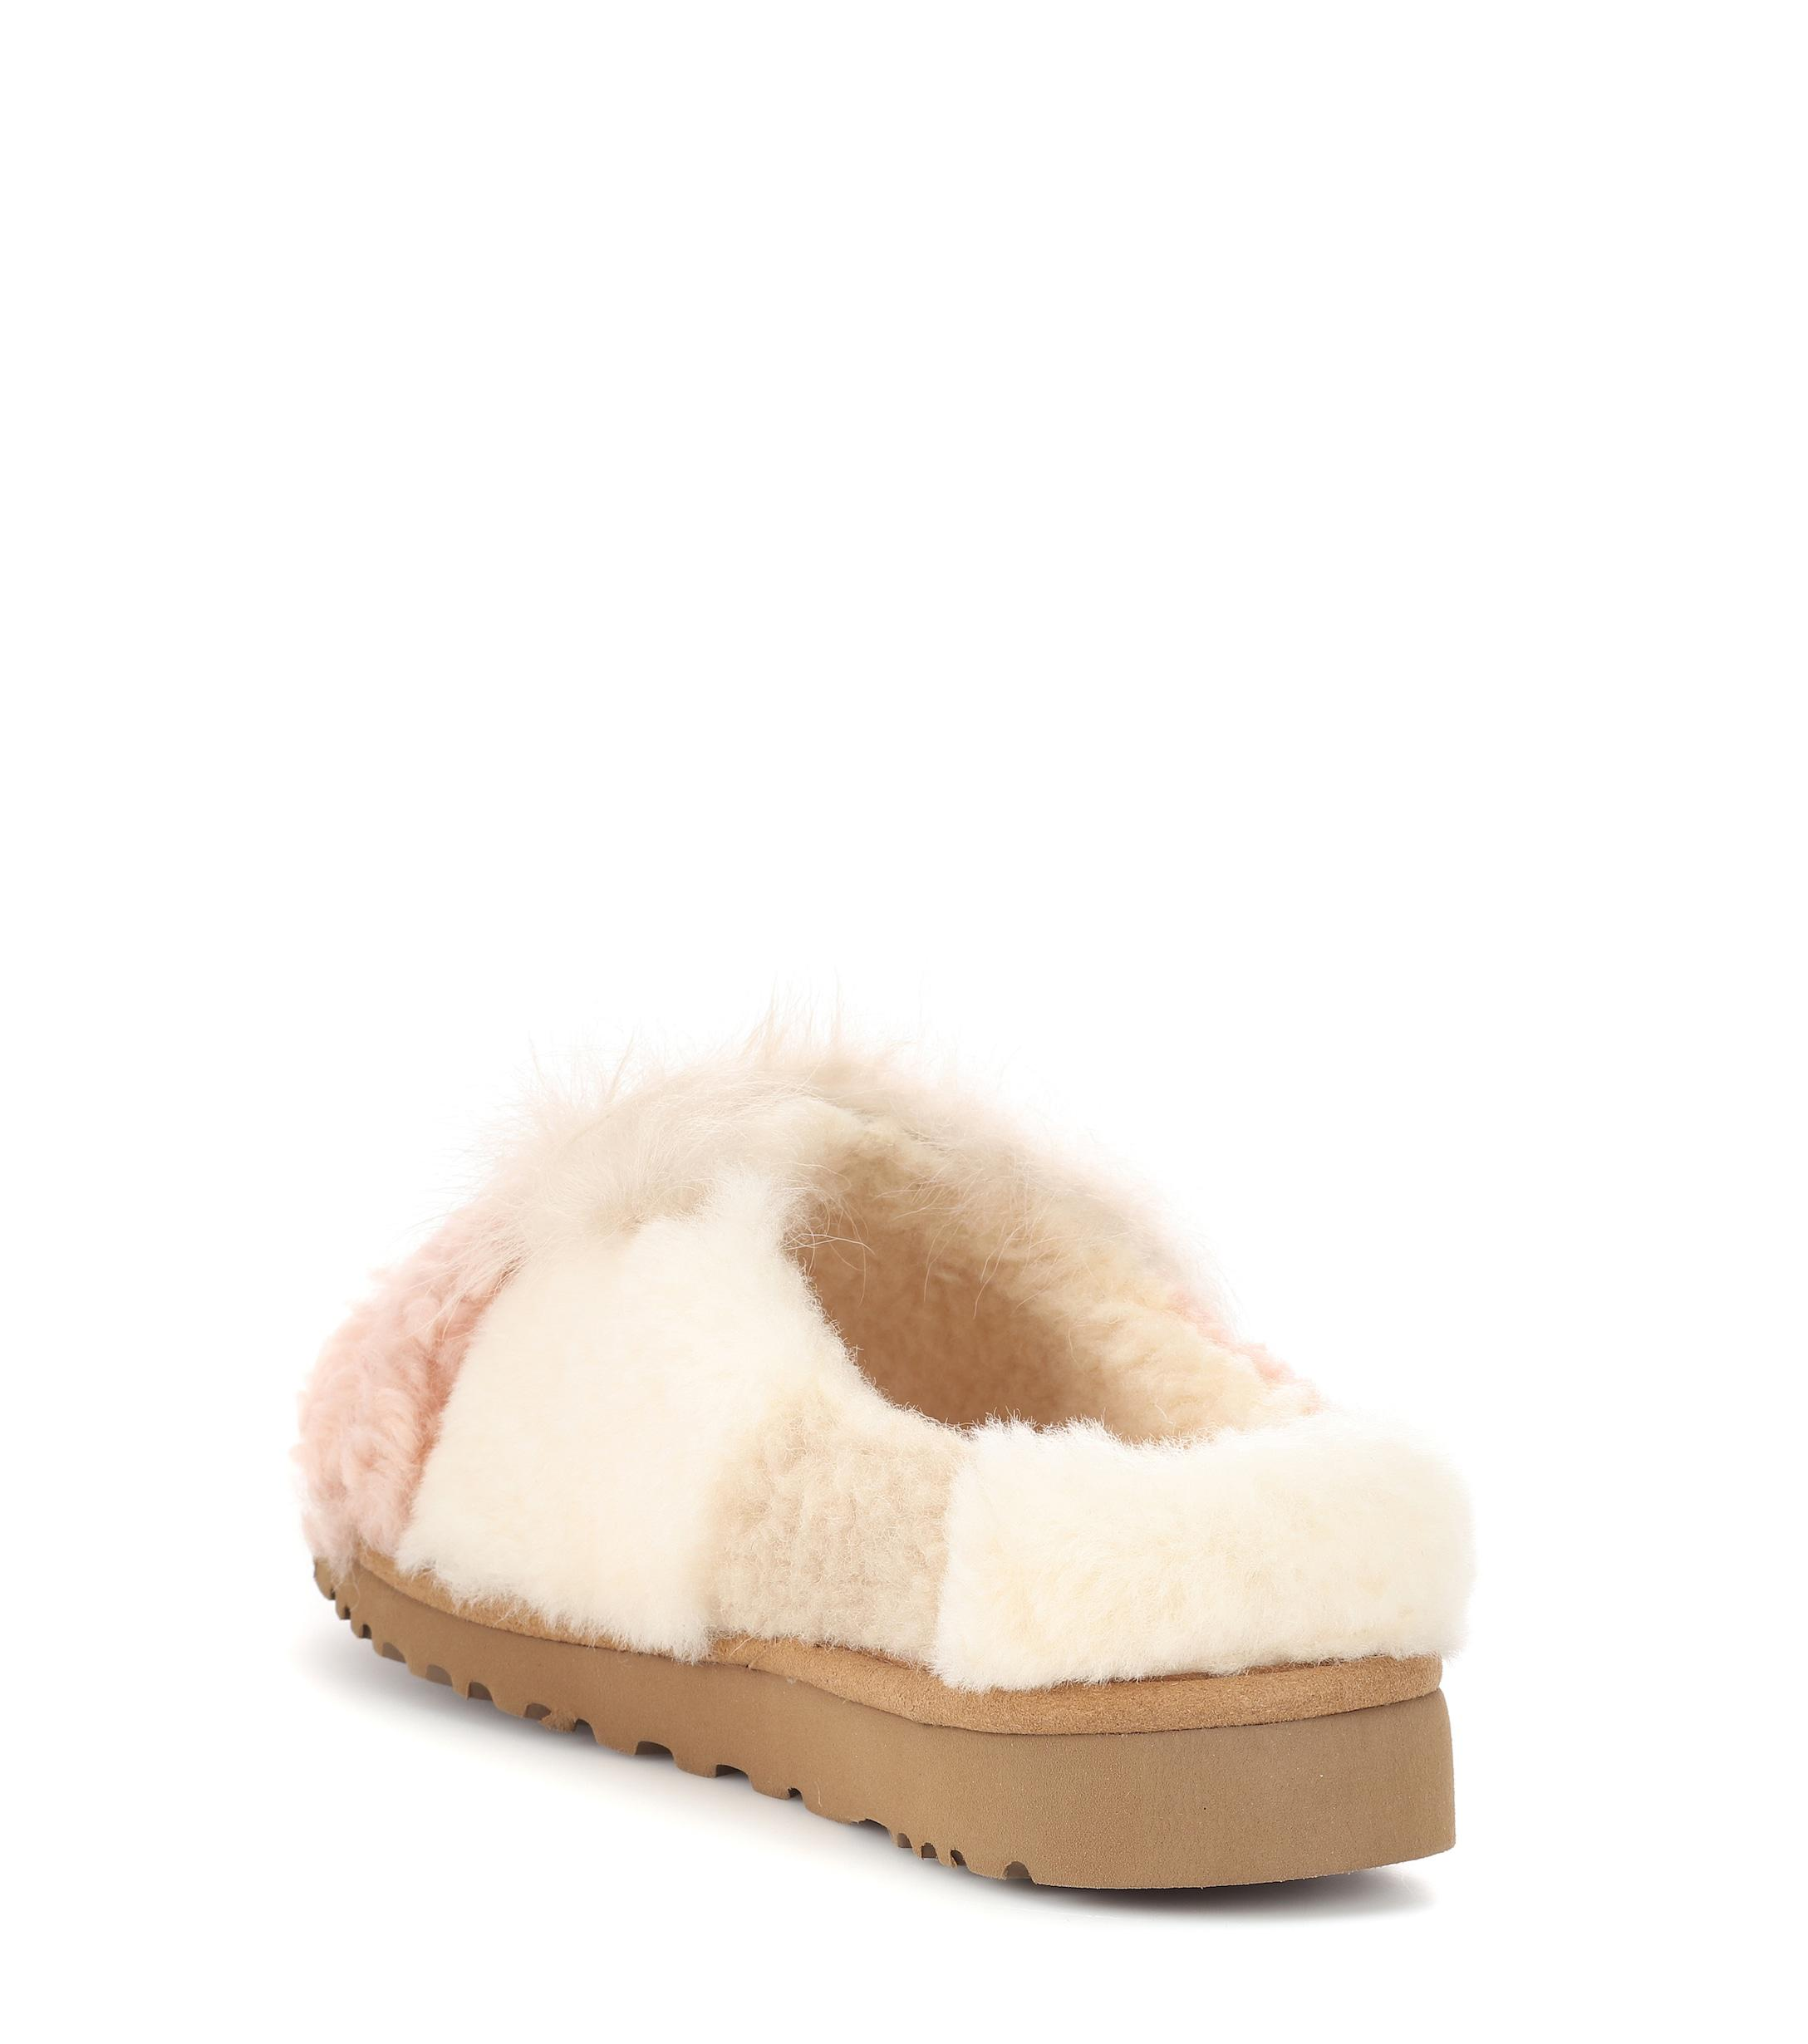 0d48713e865 Lyst - UGG Patchwork Fluff Shearling Slippers in Brown